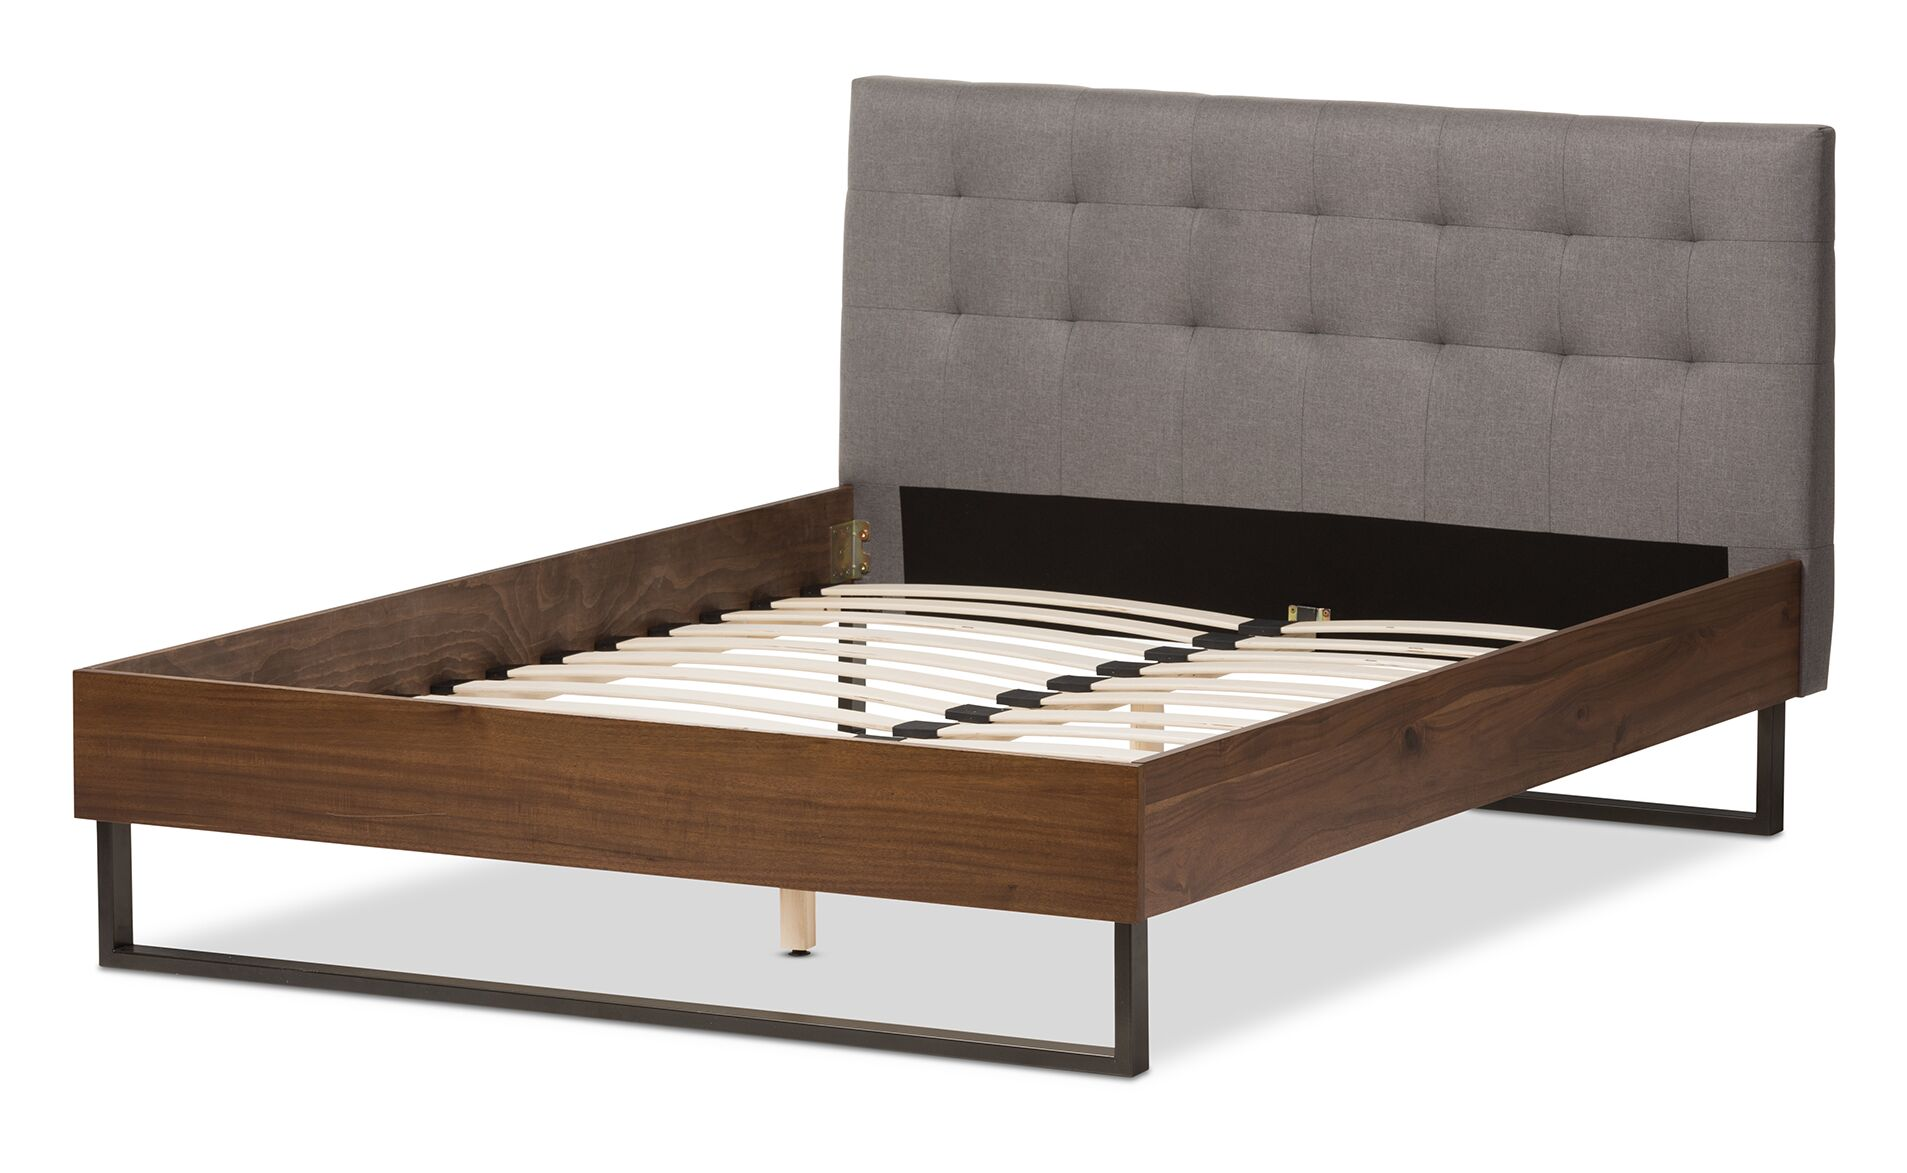 Baxton Studio Alberto Upholstered Platform Bed Size: Full, Headboard Color: Gray Linen